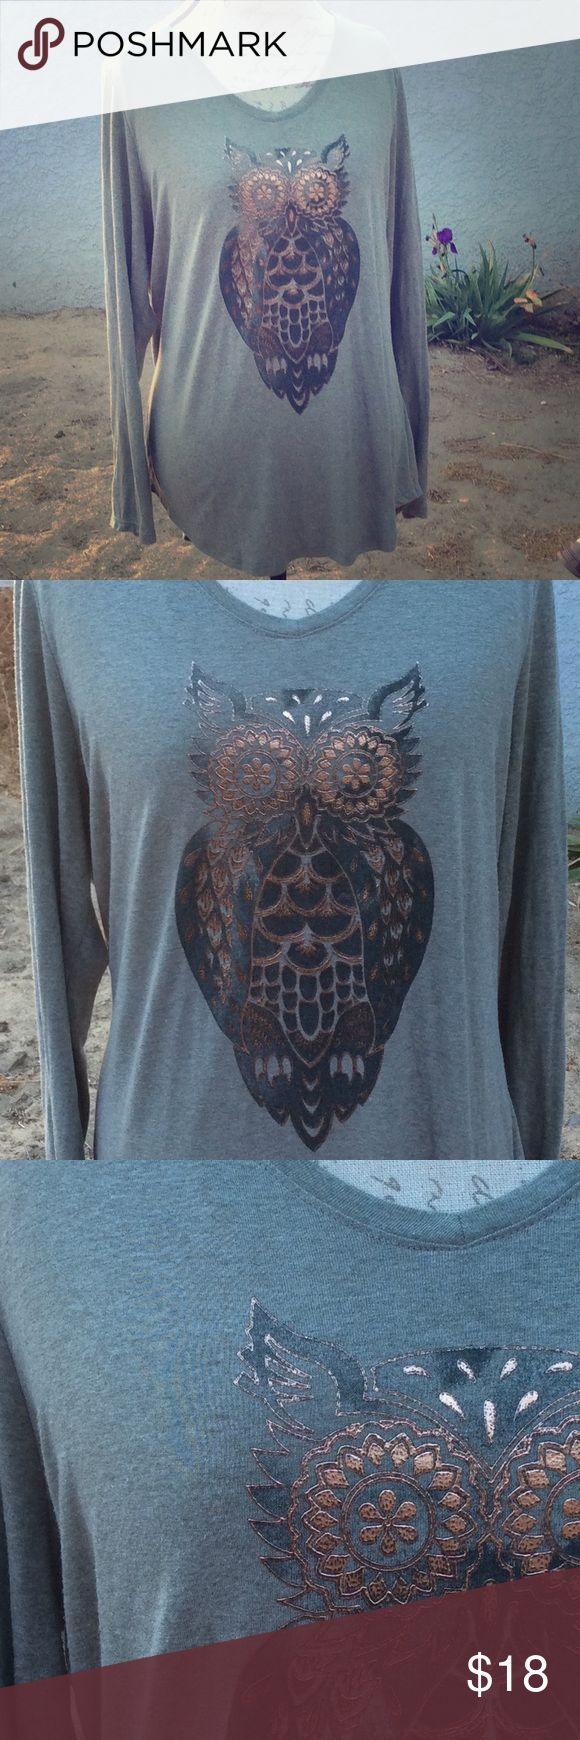 Owl shirt Green long sleeve casual shirt. Posting as XL. Has a spot at the bottom but not noticeable. Just My Size Tops Tees - Long Sleeve